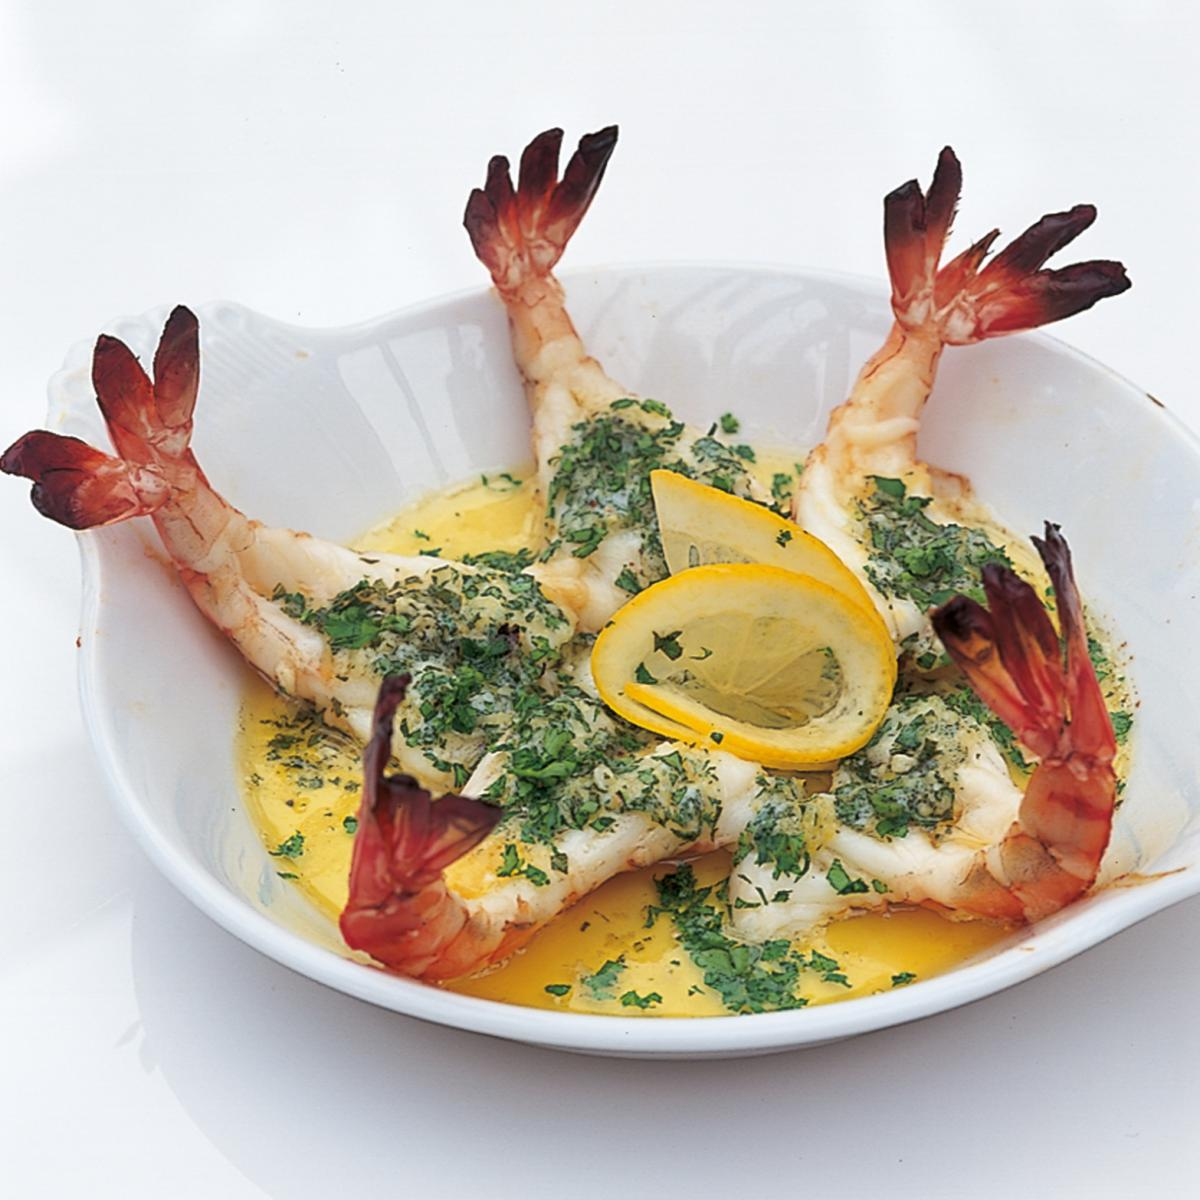 Htc roasted butterflied tiger prawns in garlic butter